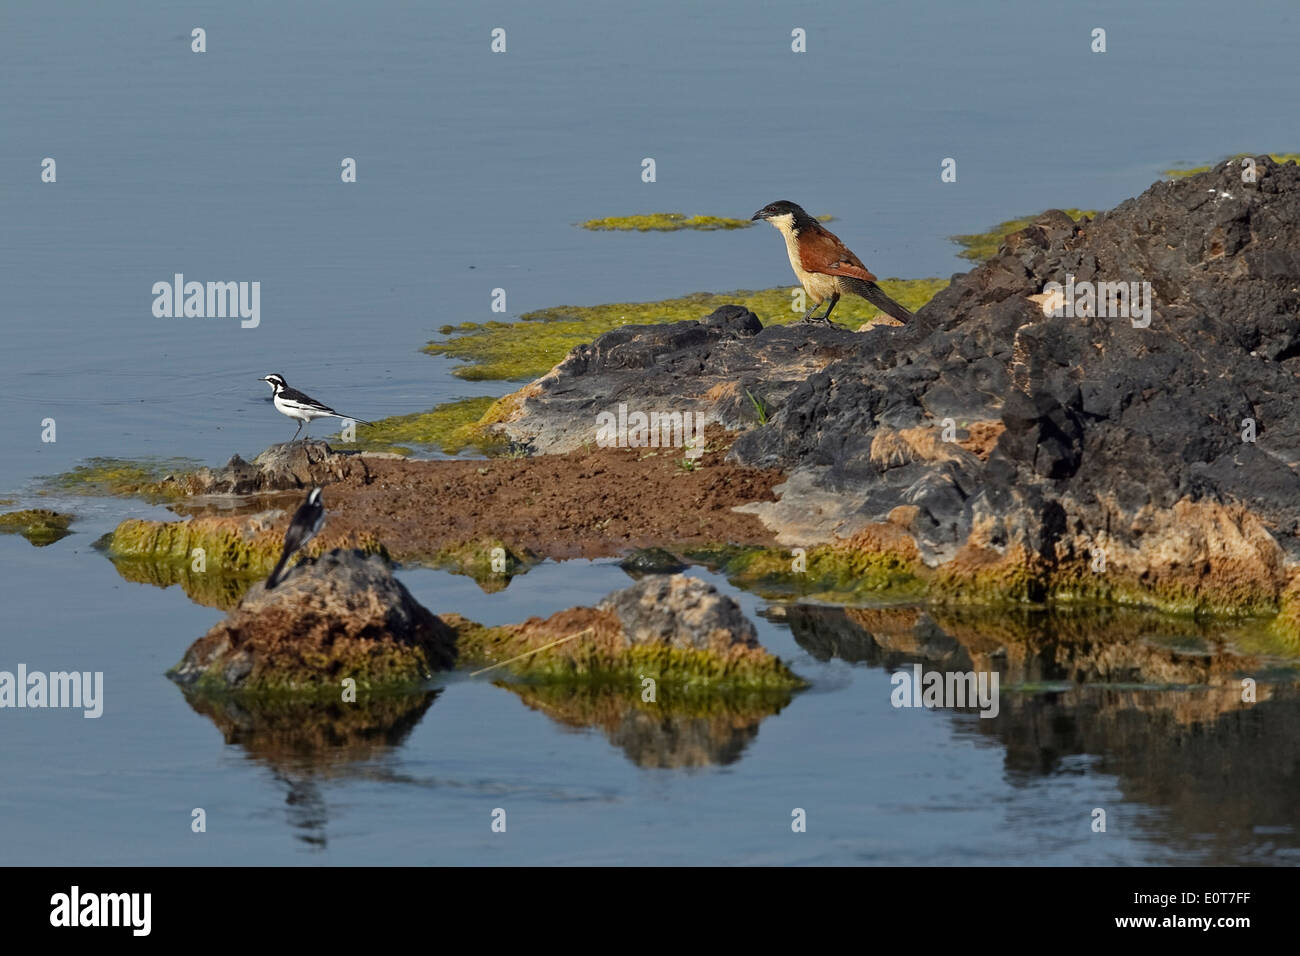 Burchell´s Coucal (Centropus burchelli) and two African Pied Wagtails (Motacilla aguimp), Kruger National Park, South Africa - Stock Image